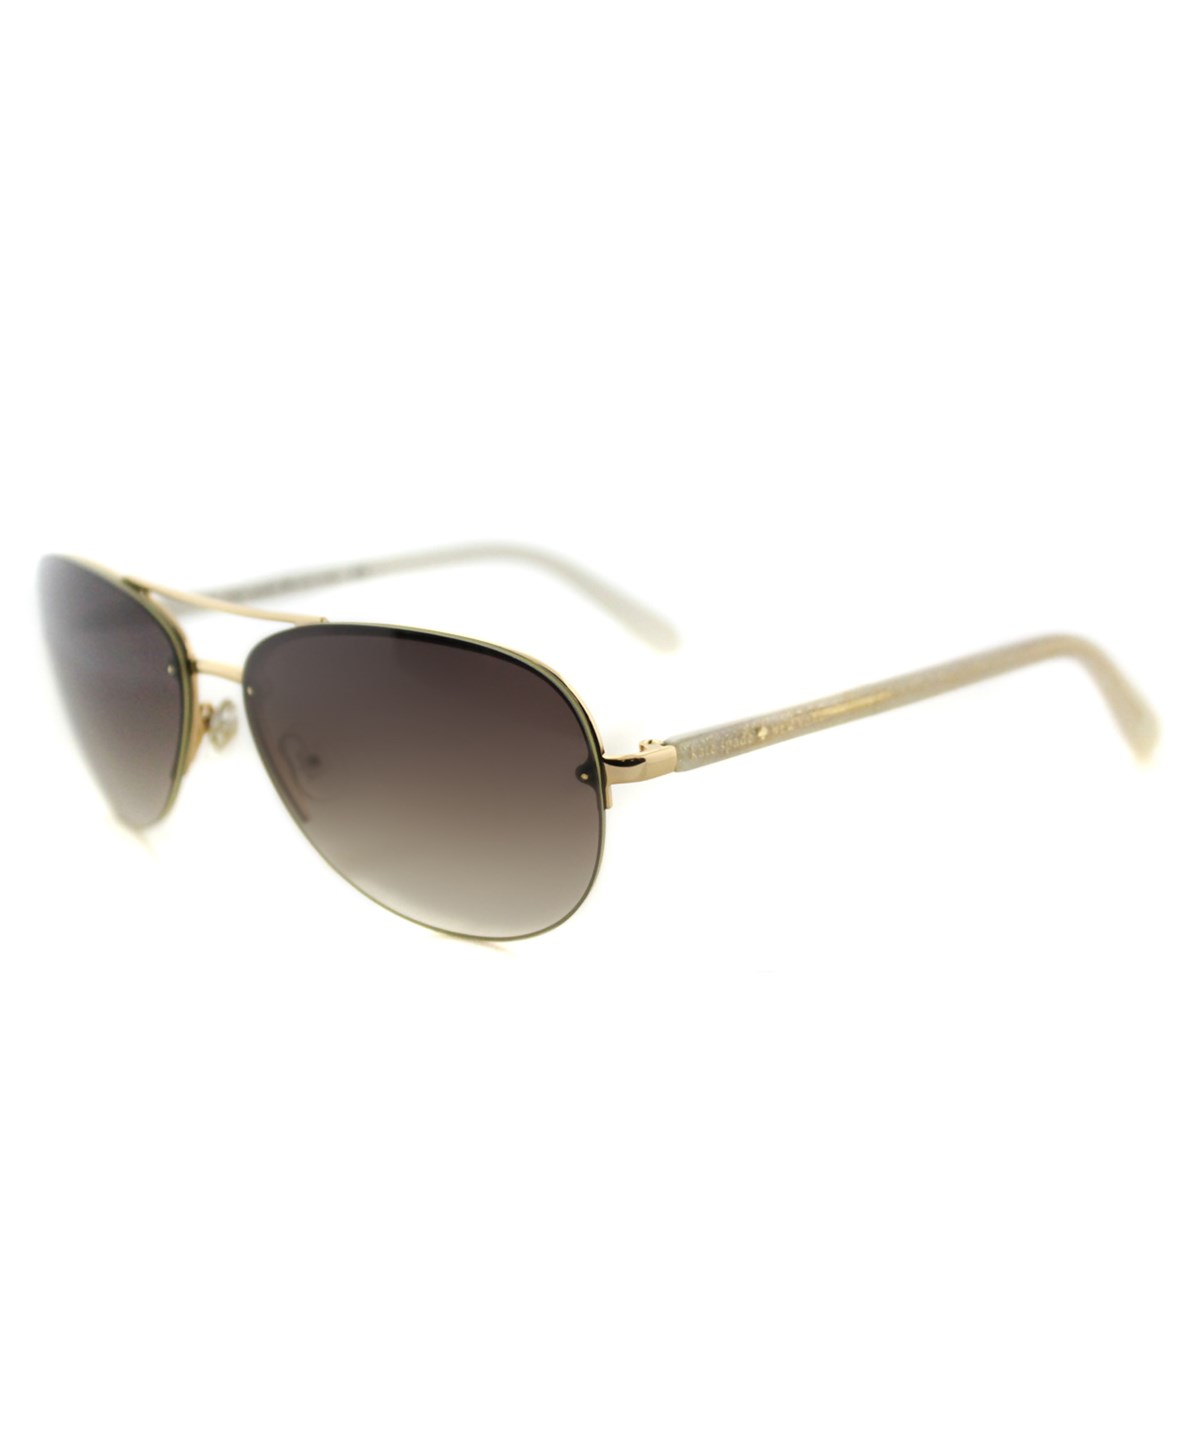 KATE SPADE BERYL AVIATOR METAL SUNGLASSES, GOLD BROWN